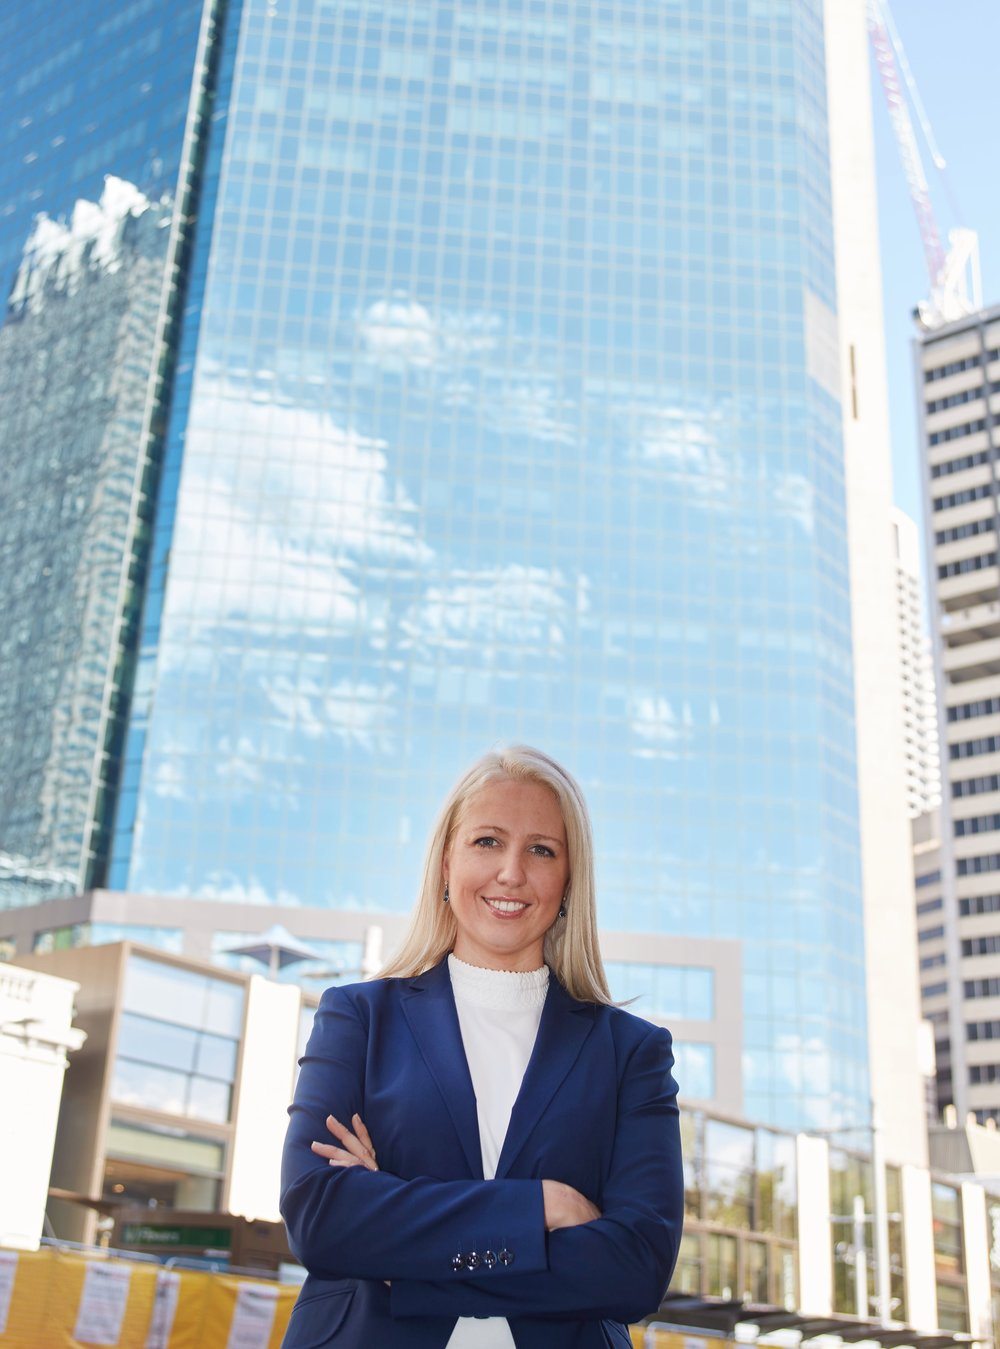 Emi Golding, Corporate Consultant to Fortune 500 companies